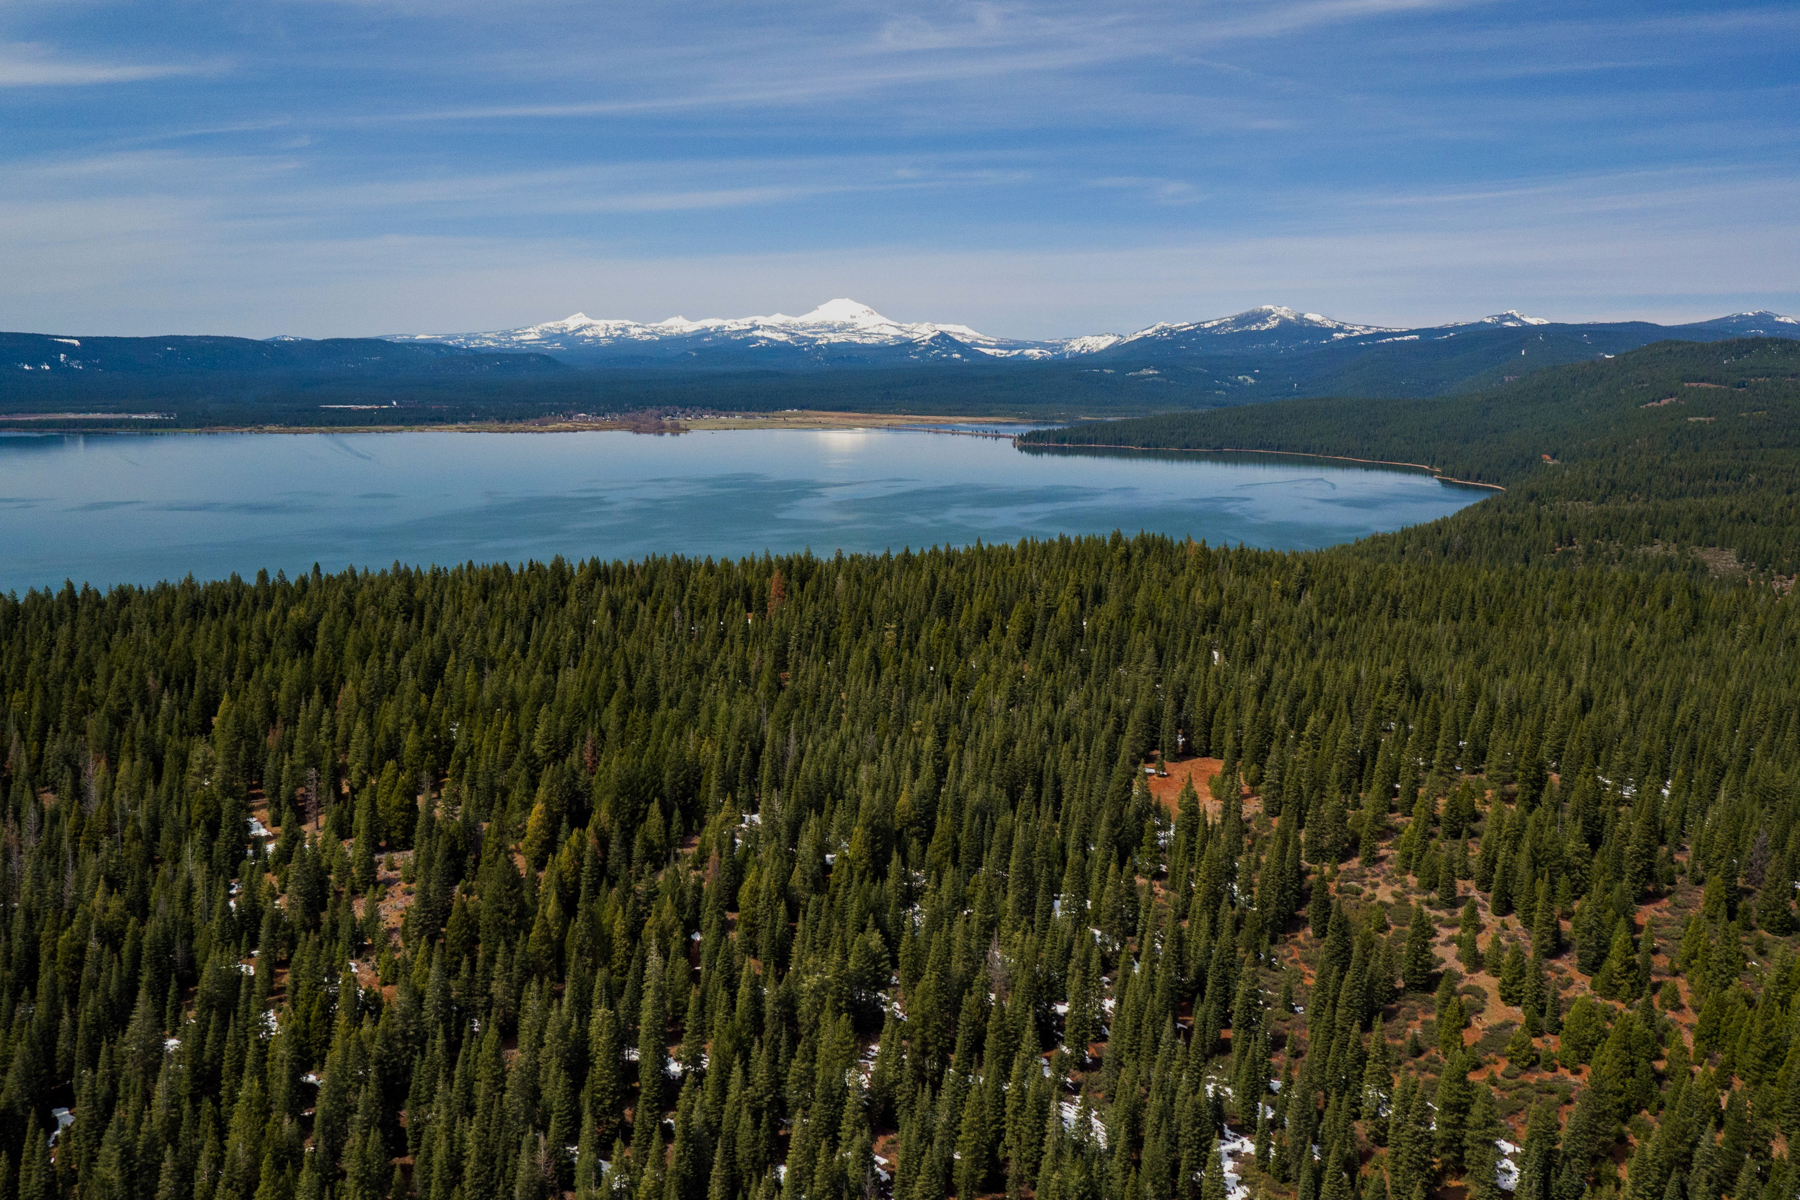 Property 为 销售 在 000 Clifford Drive, Lake Almanor, CA 000 Clifford Drive Lake Almanor, 加利福尼亚州 96137 美国